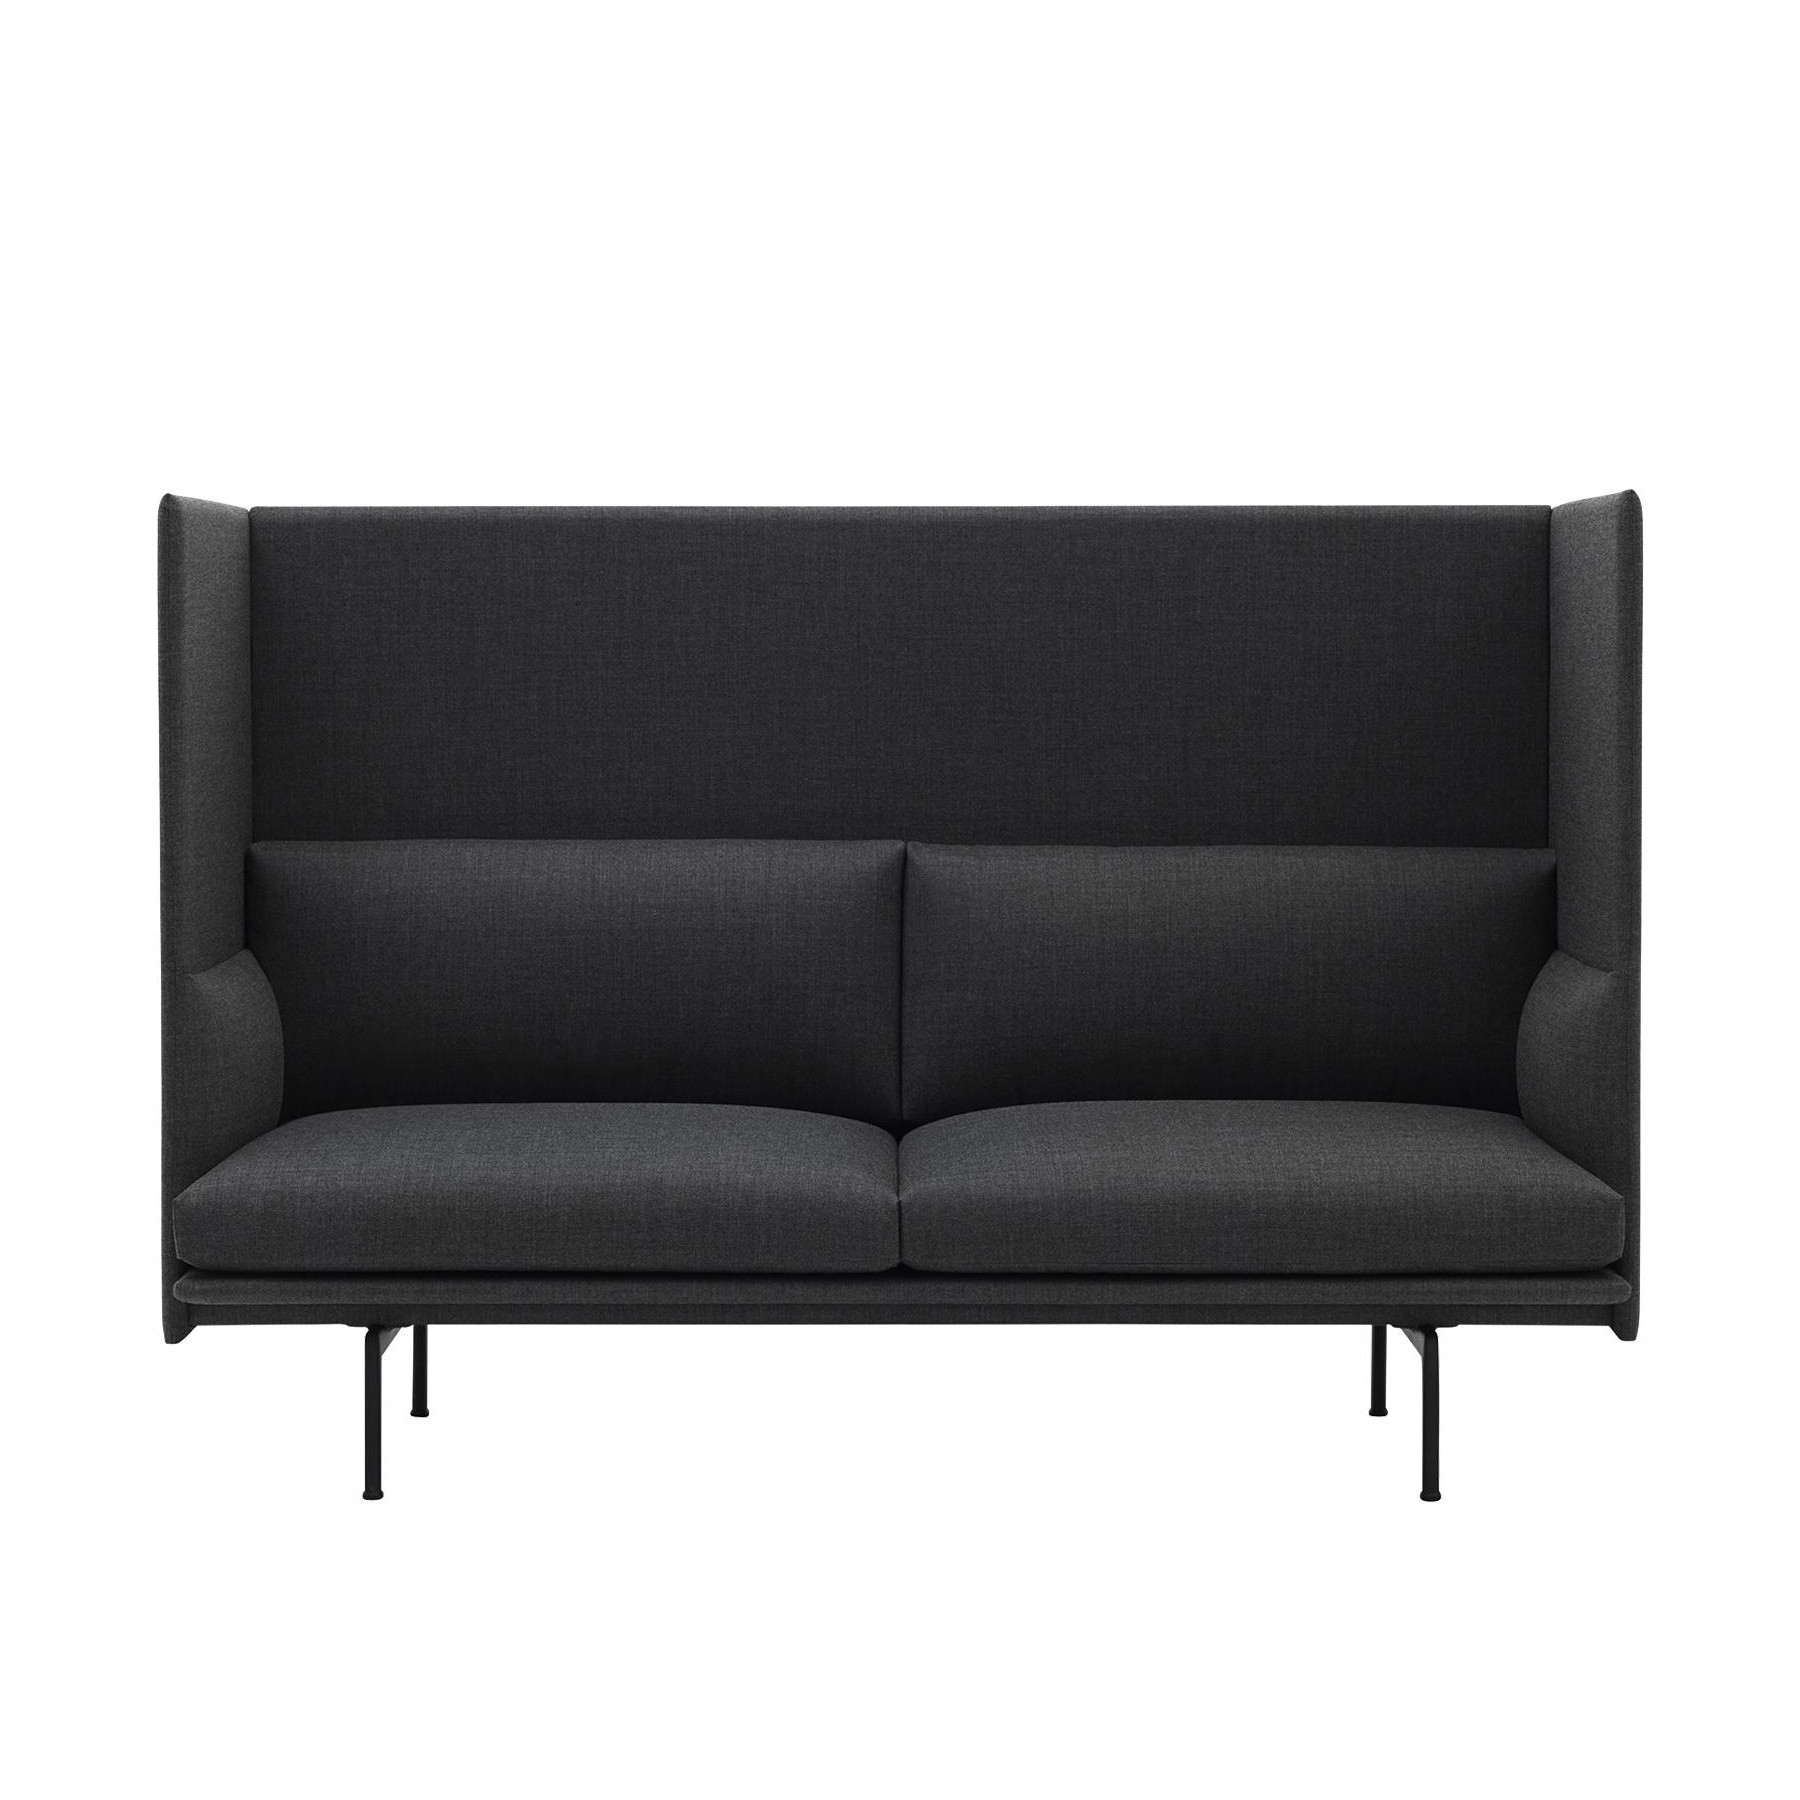 Outdoor Patio Couch Set, Muuto Outline Highback Sofa 2 Seater Ambientedirect